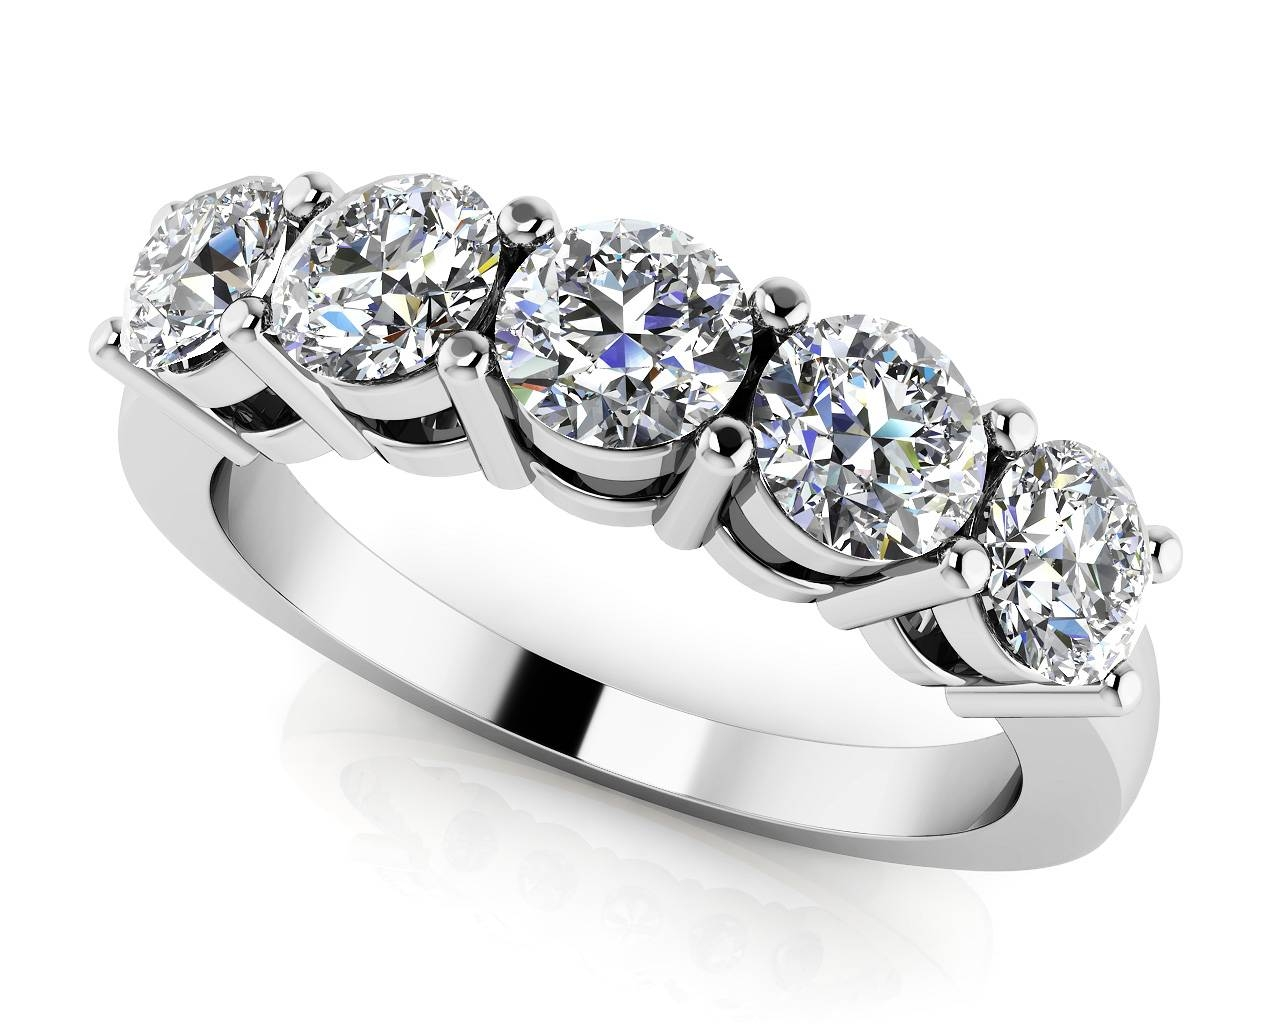 Design Your Own Diamond Anniversary Ring & Eternity Ring Pertaining To Most Up To Date 5 Stone Diamond Anniversary Rings (View 12 of 25)